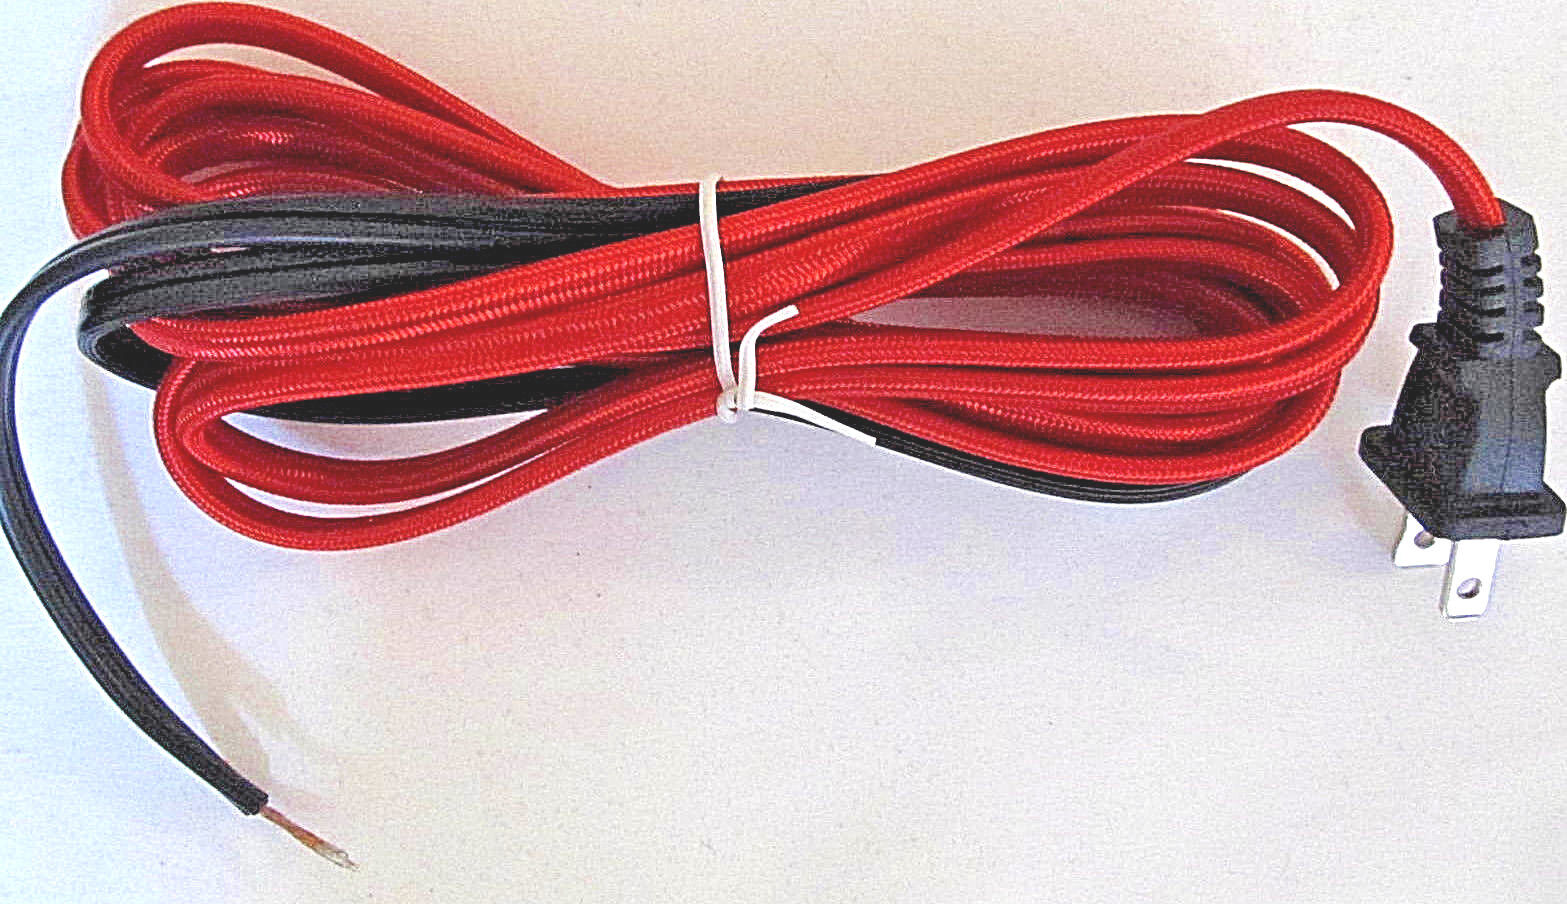 AC Power Cable US 2-prong Plug New Wrapped in *RED* Fabric isolation